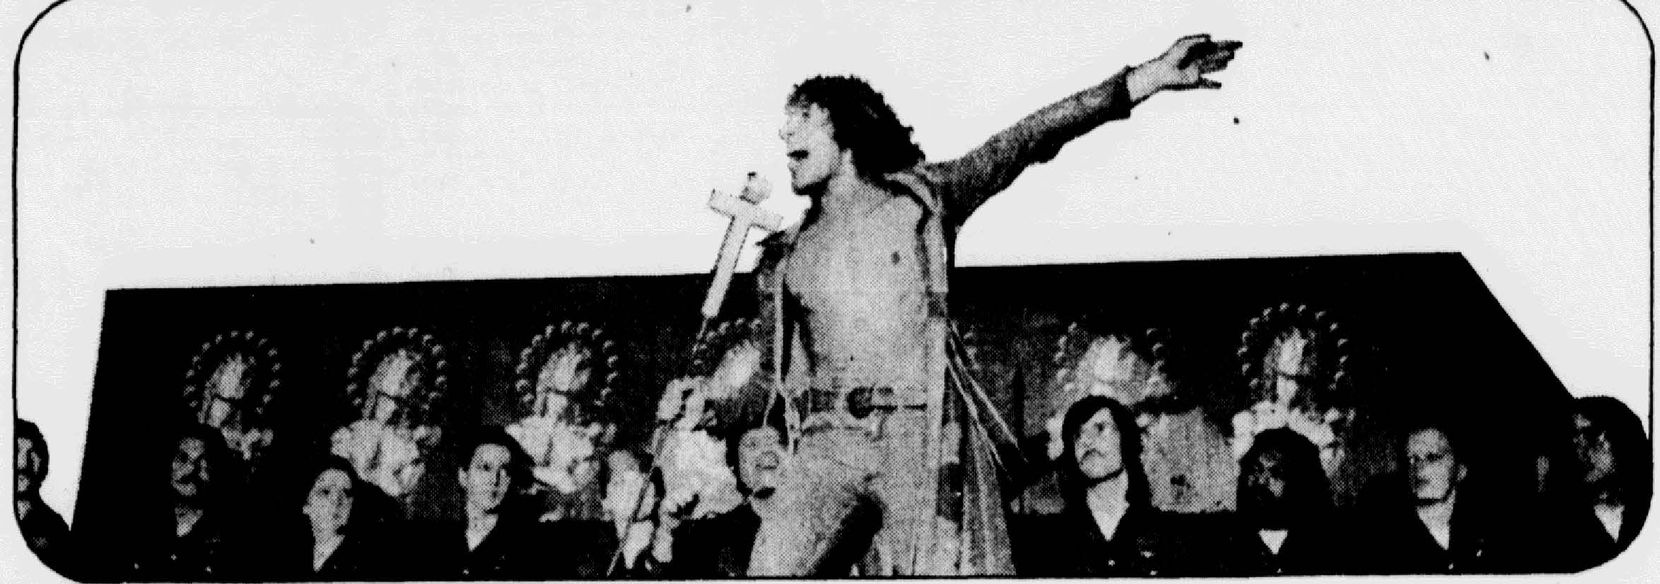 On Aug. 17, 1975, Roger Daltrey, lead singer of The Who, made a surprise appearance at Sound Town.